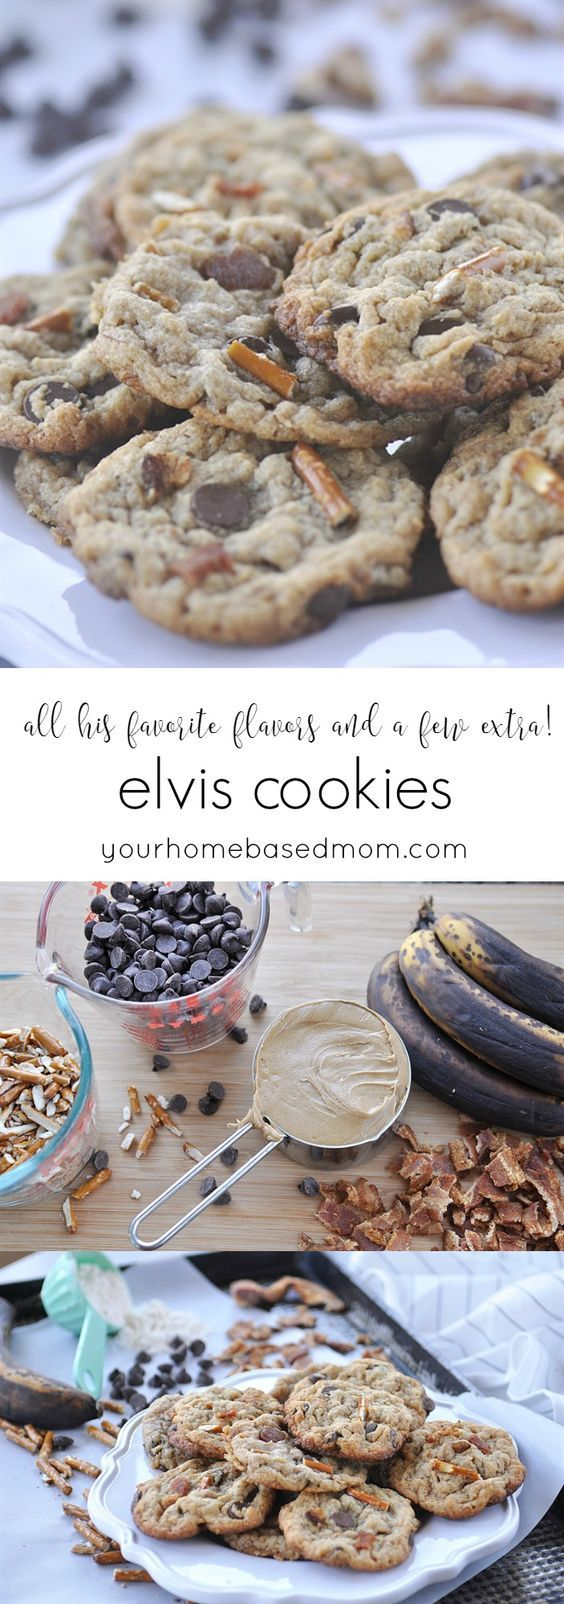 Elvis Cookies - all his favorite flavors and a few extras